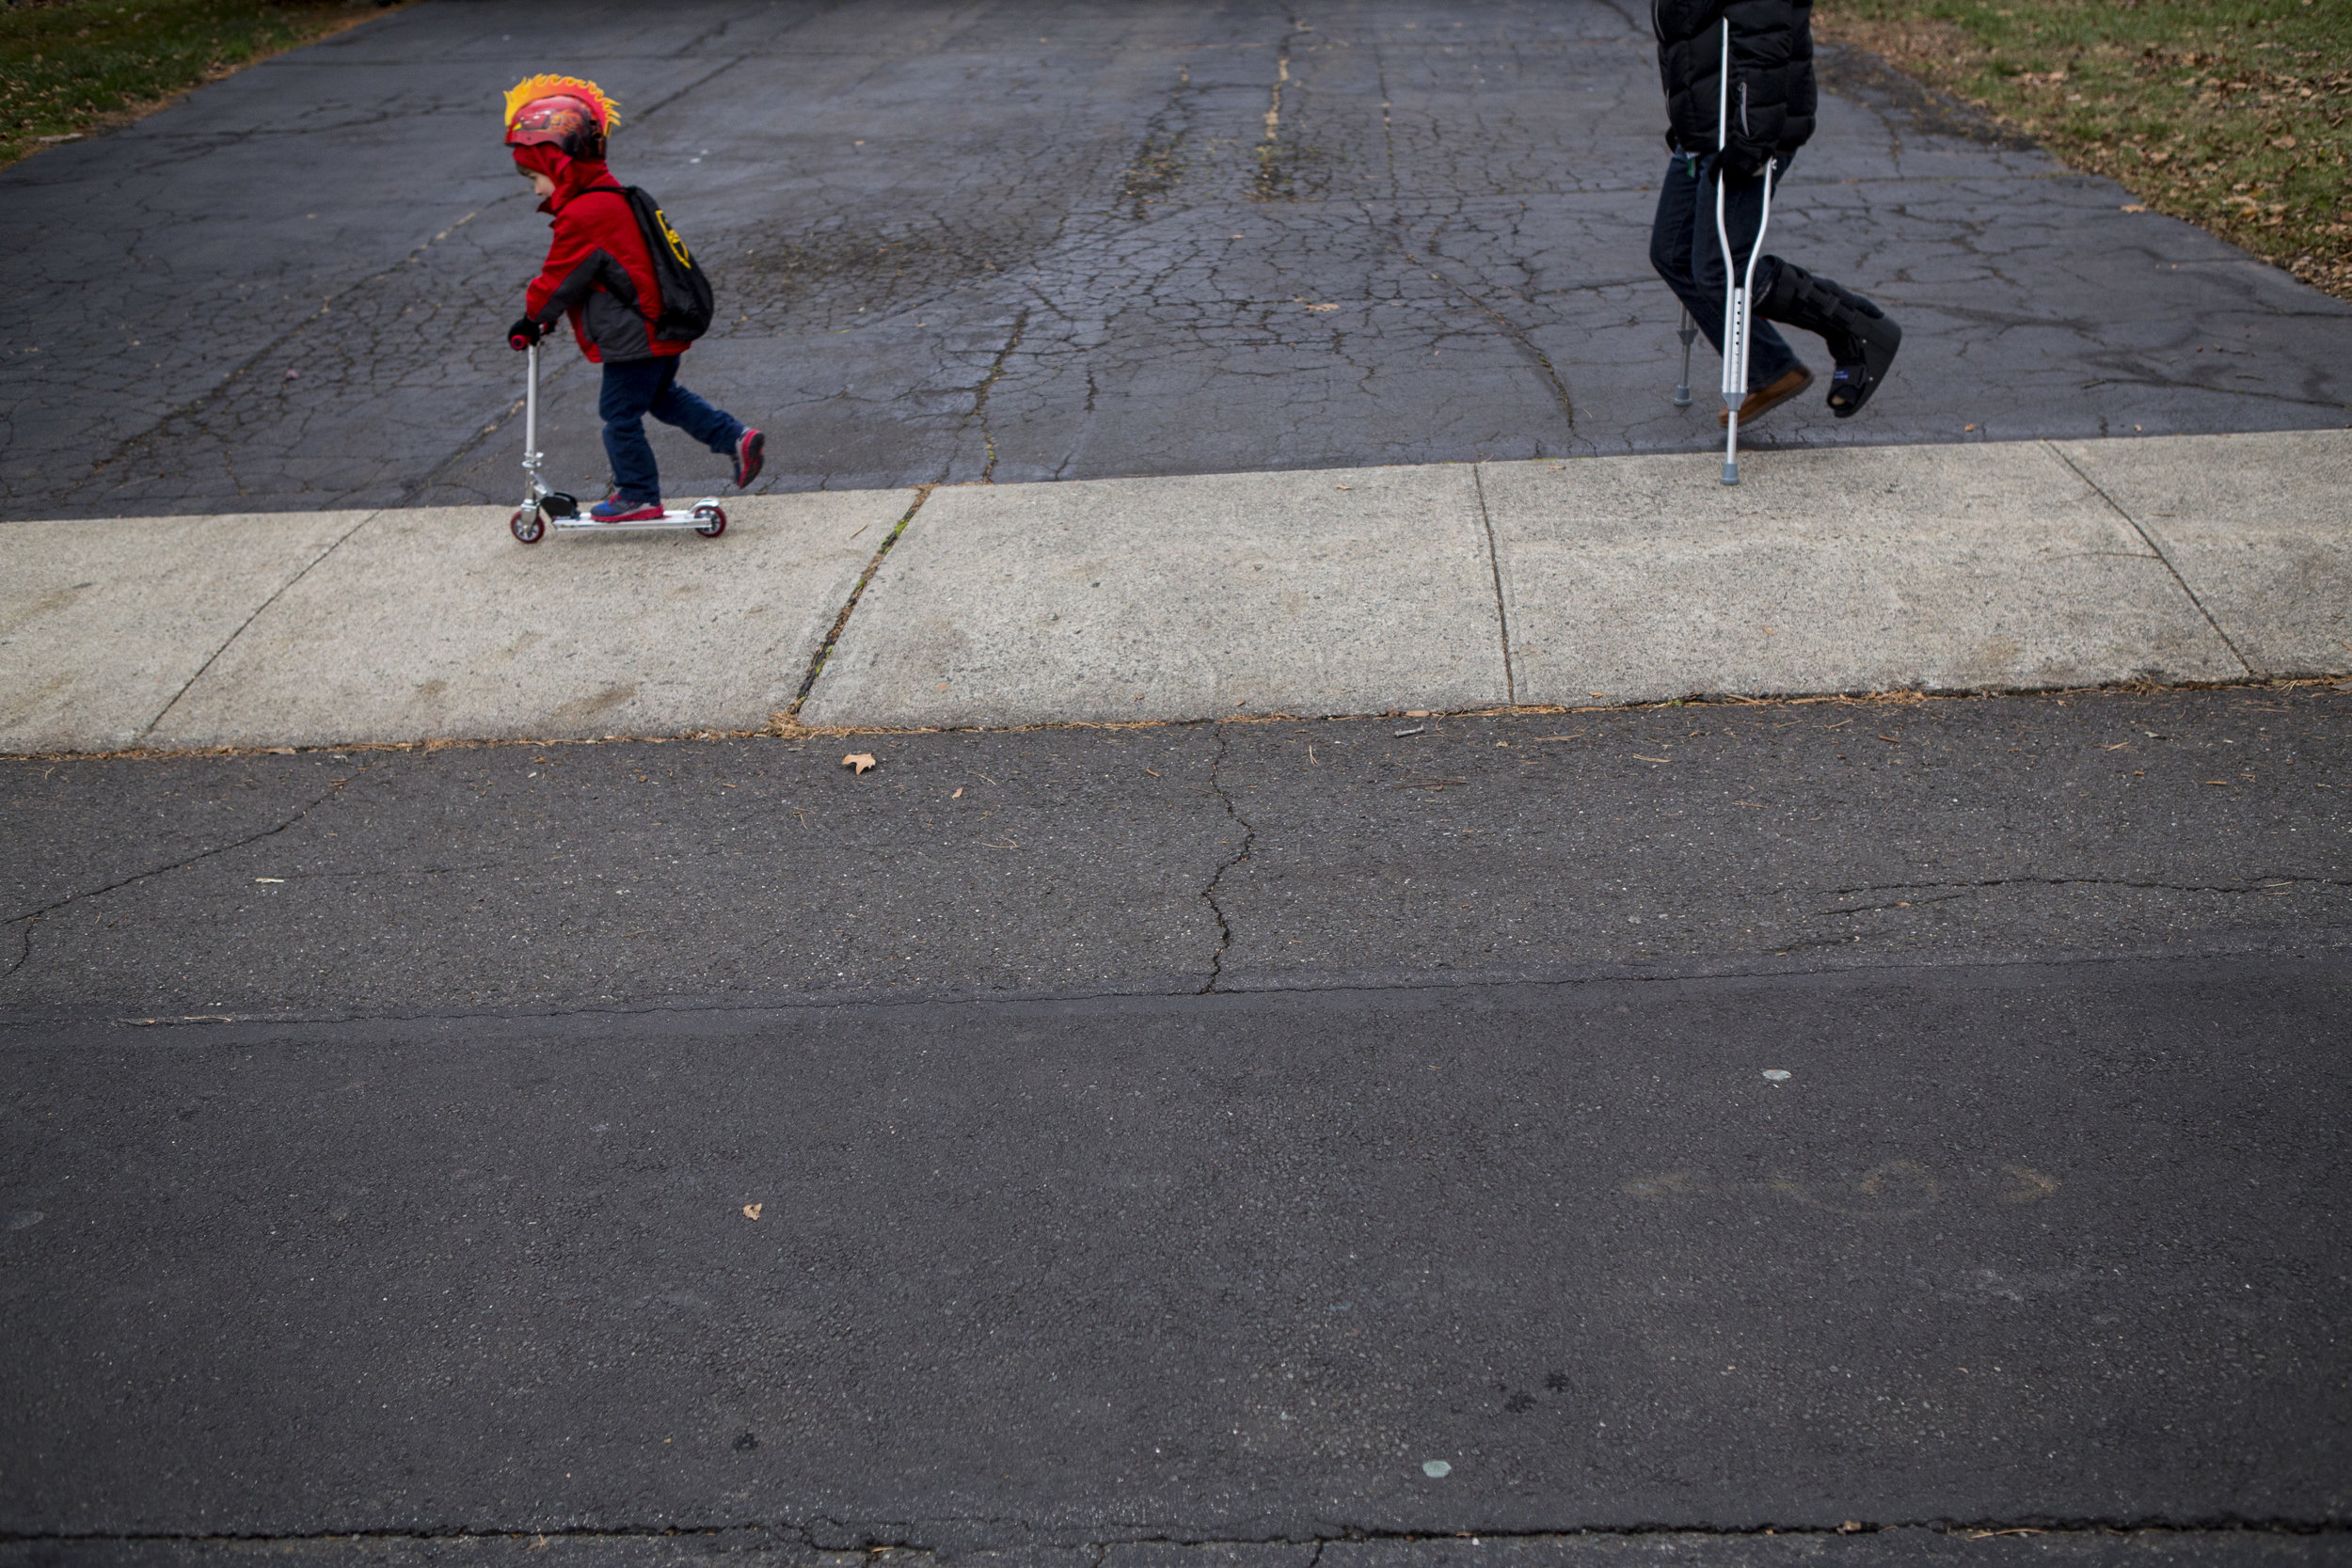 fine art child photography from Connecticut featuring minimalist composition with child dressed in red on a scooter, dad on crutches and lots of pavement.